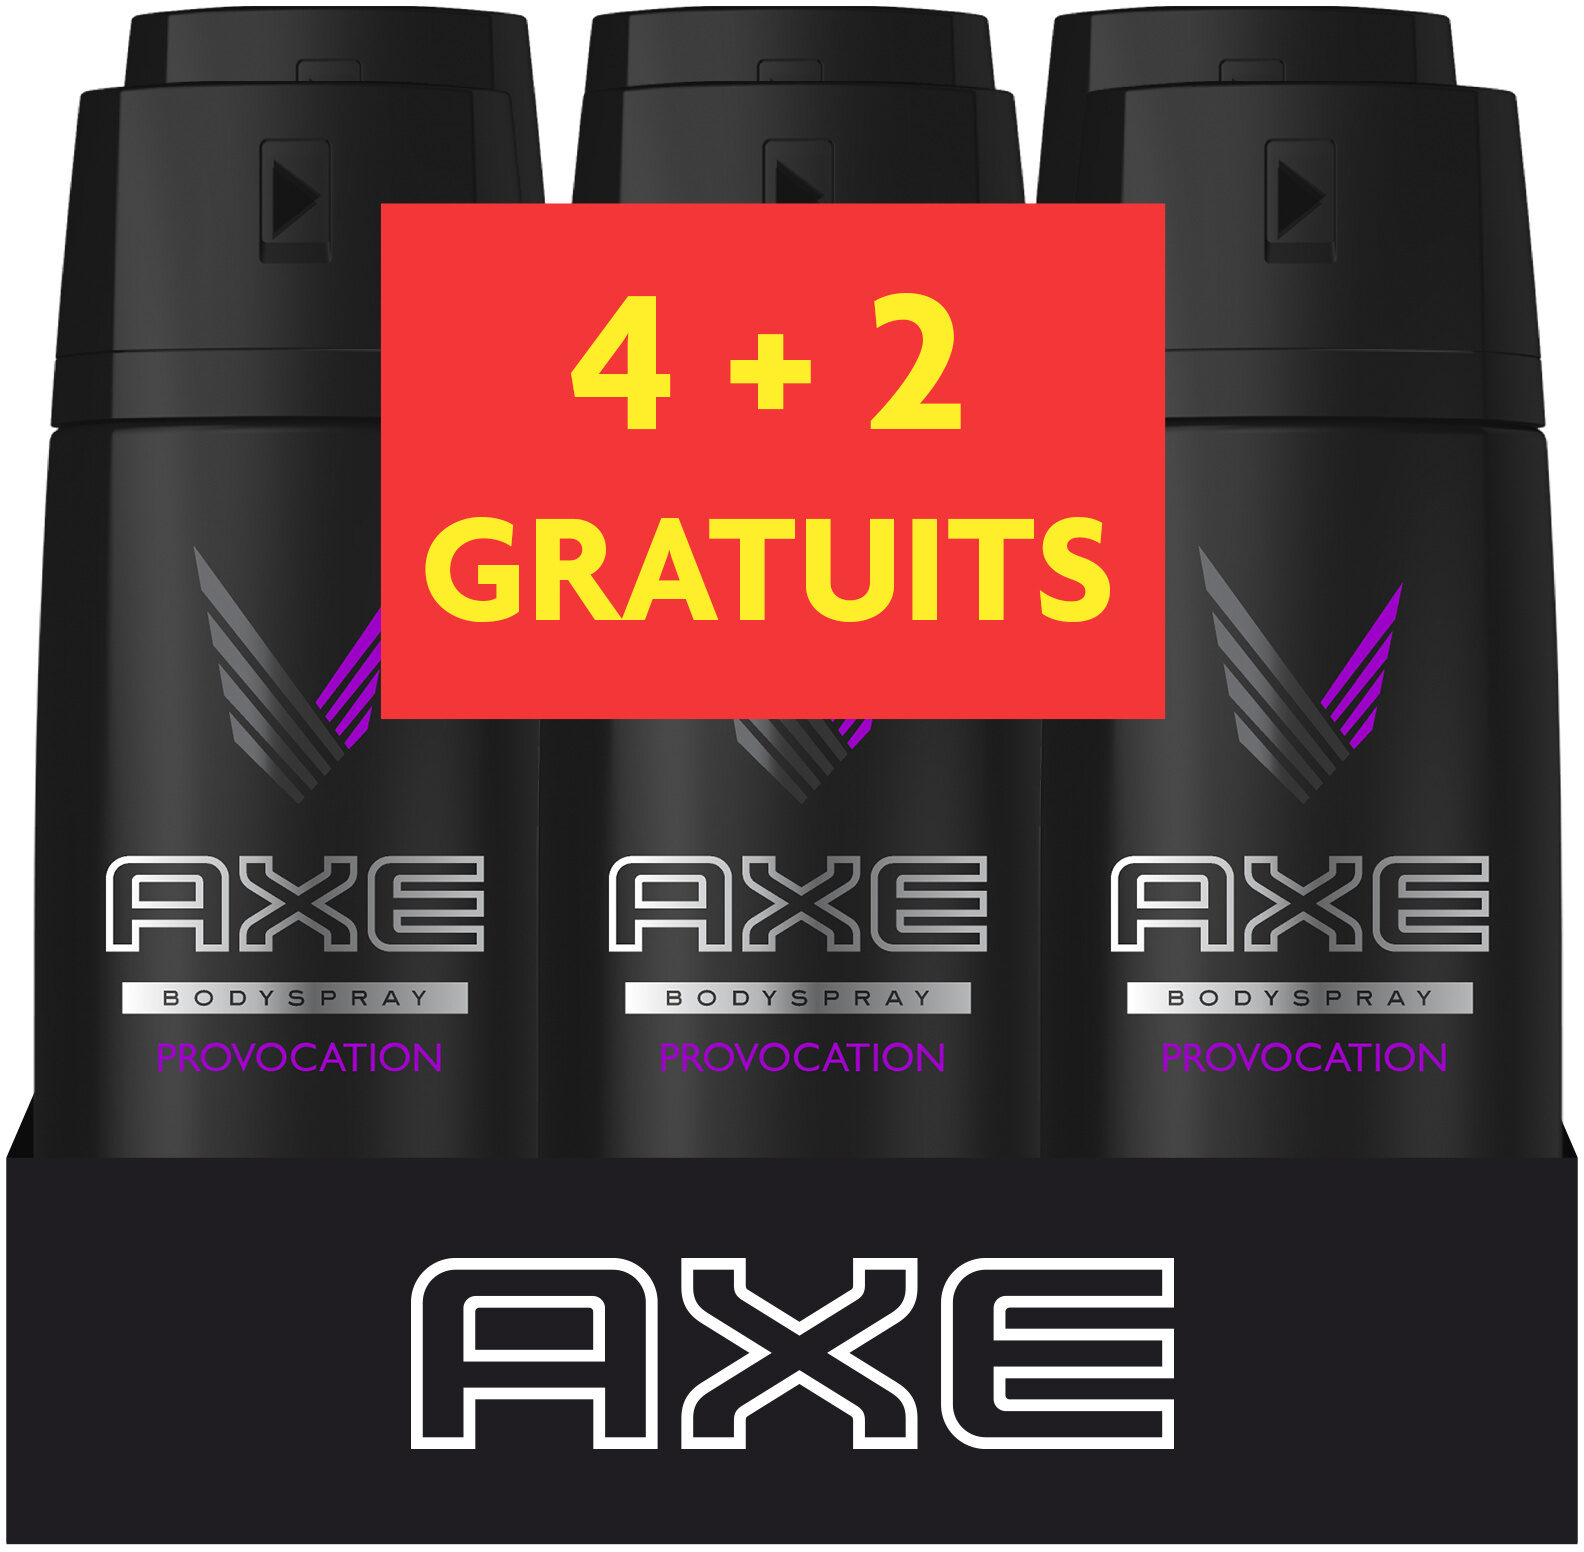 AXE Déodorant Homme Spray Provocation 150ml Lot de 4+2 Offerts - Product - fr